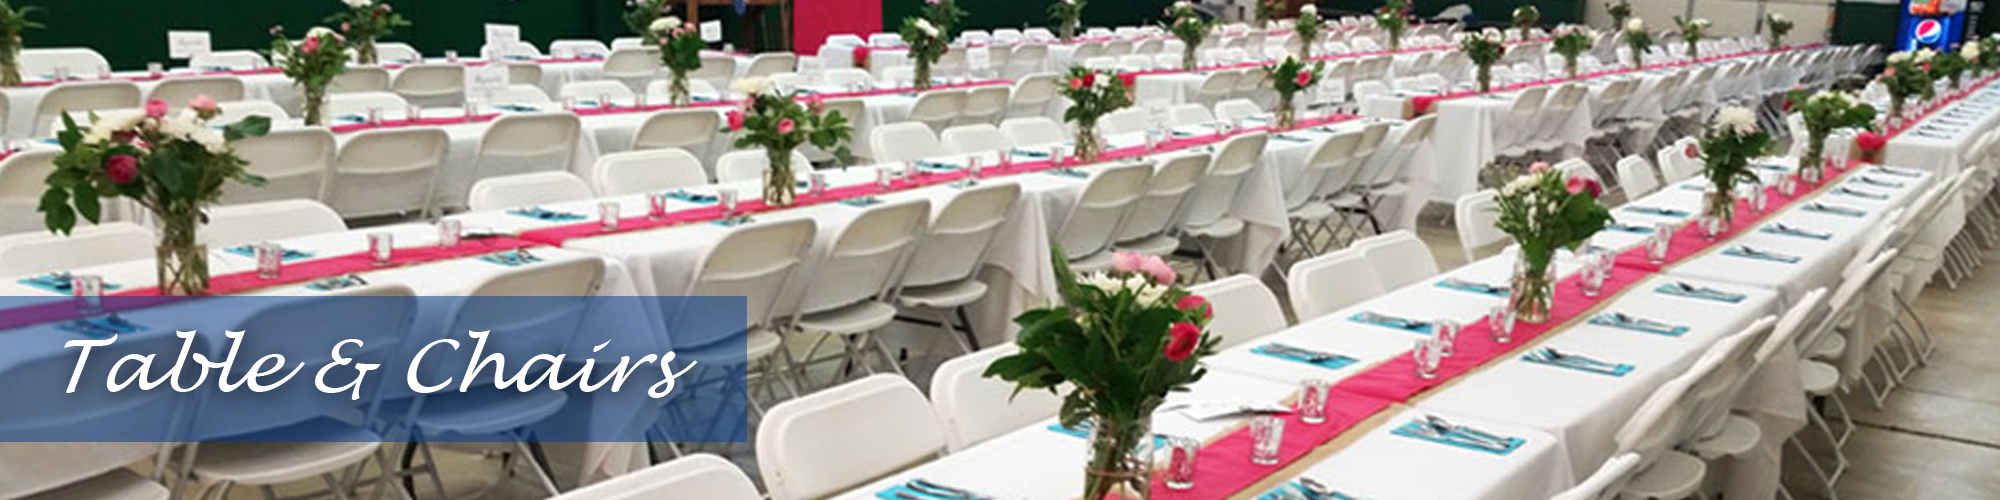 Table and Chair Rentals Fort Walton Beach